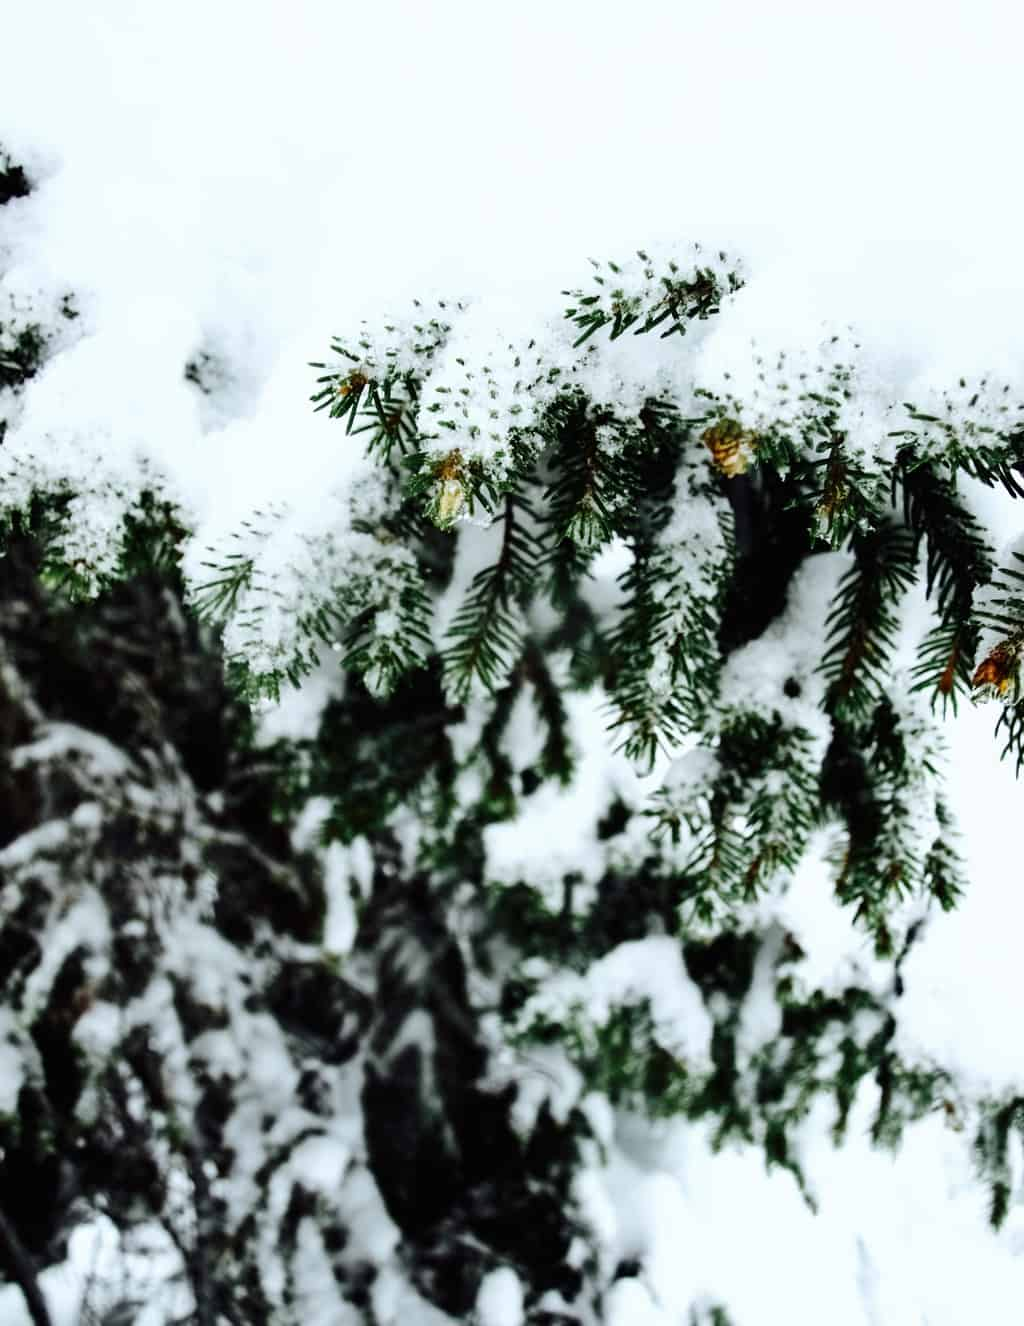 Forest in snow inspiration from our recent trip to Austrian Alps